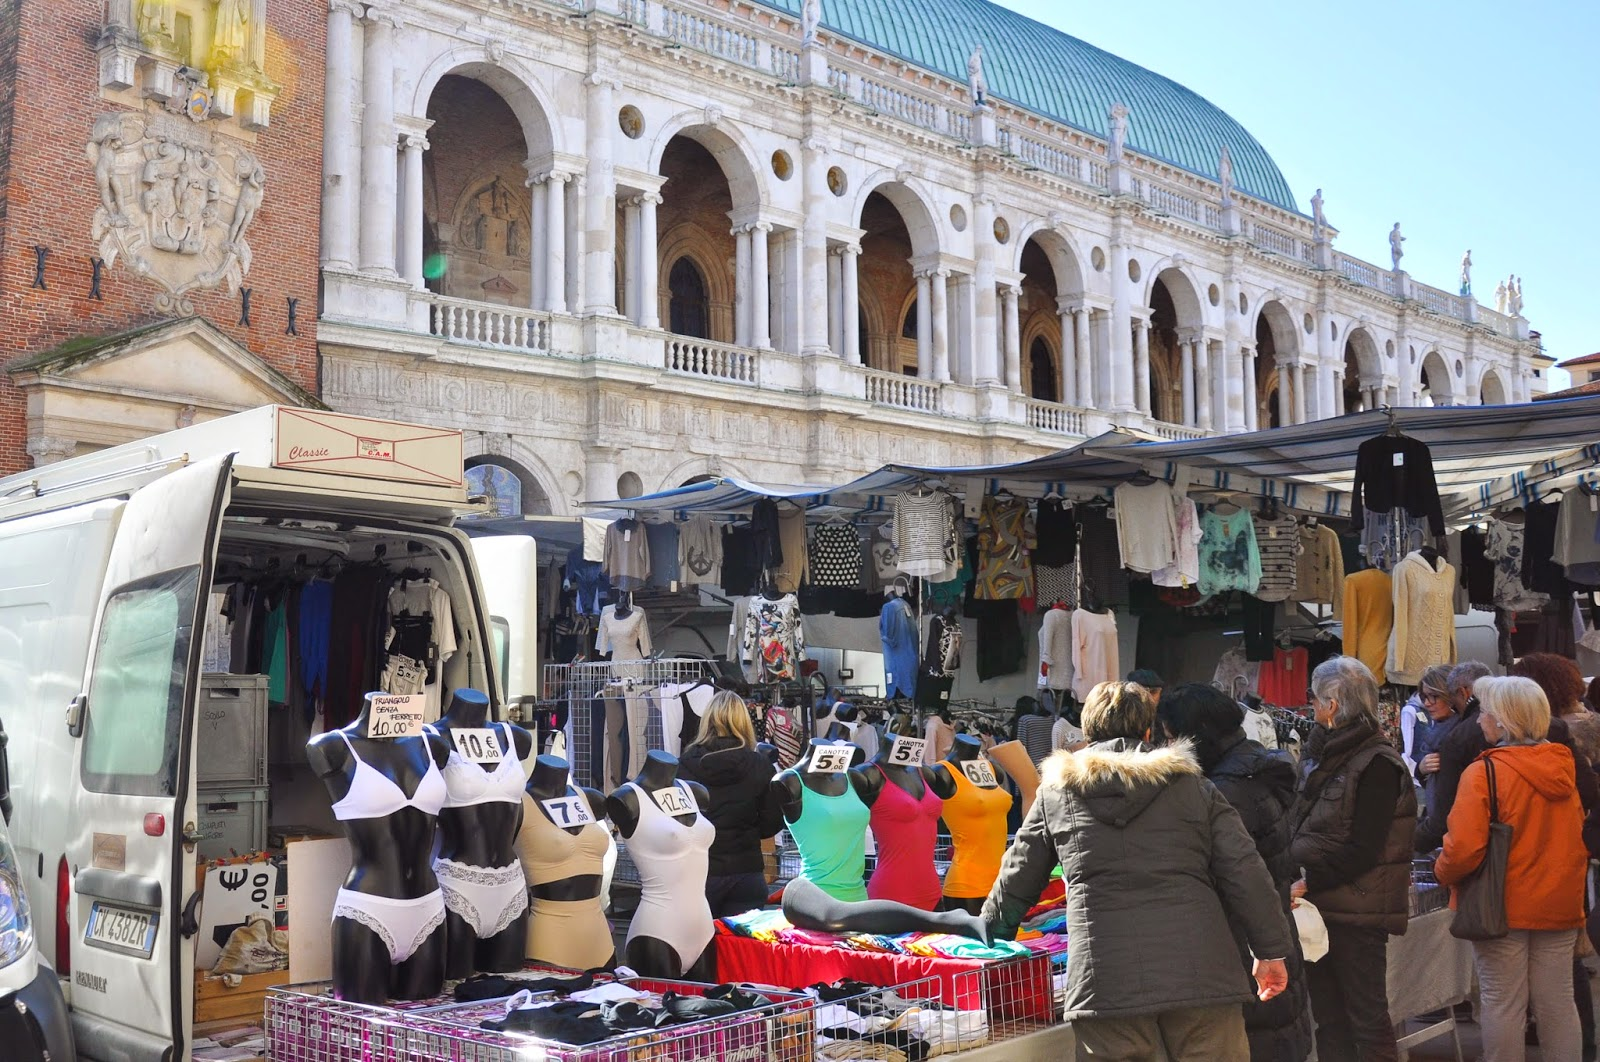 The underwear stall at the Thursday market in Vicenza, Italy